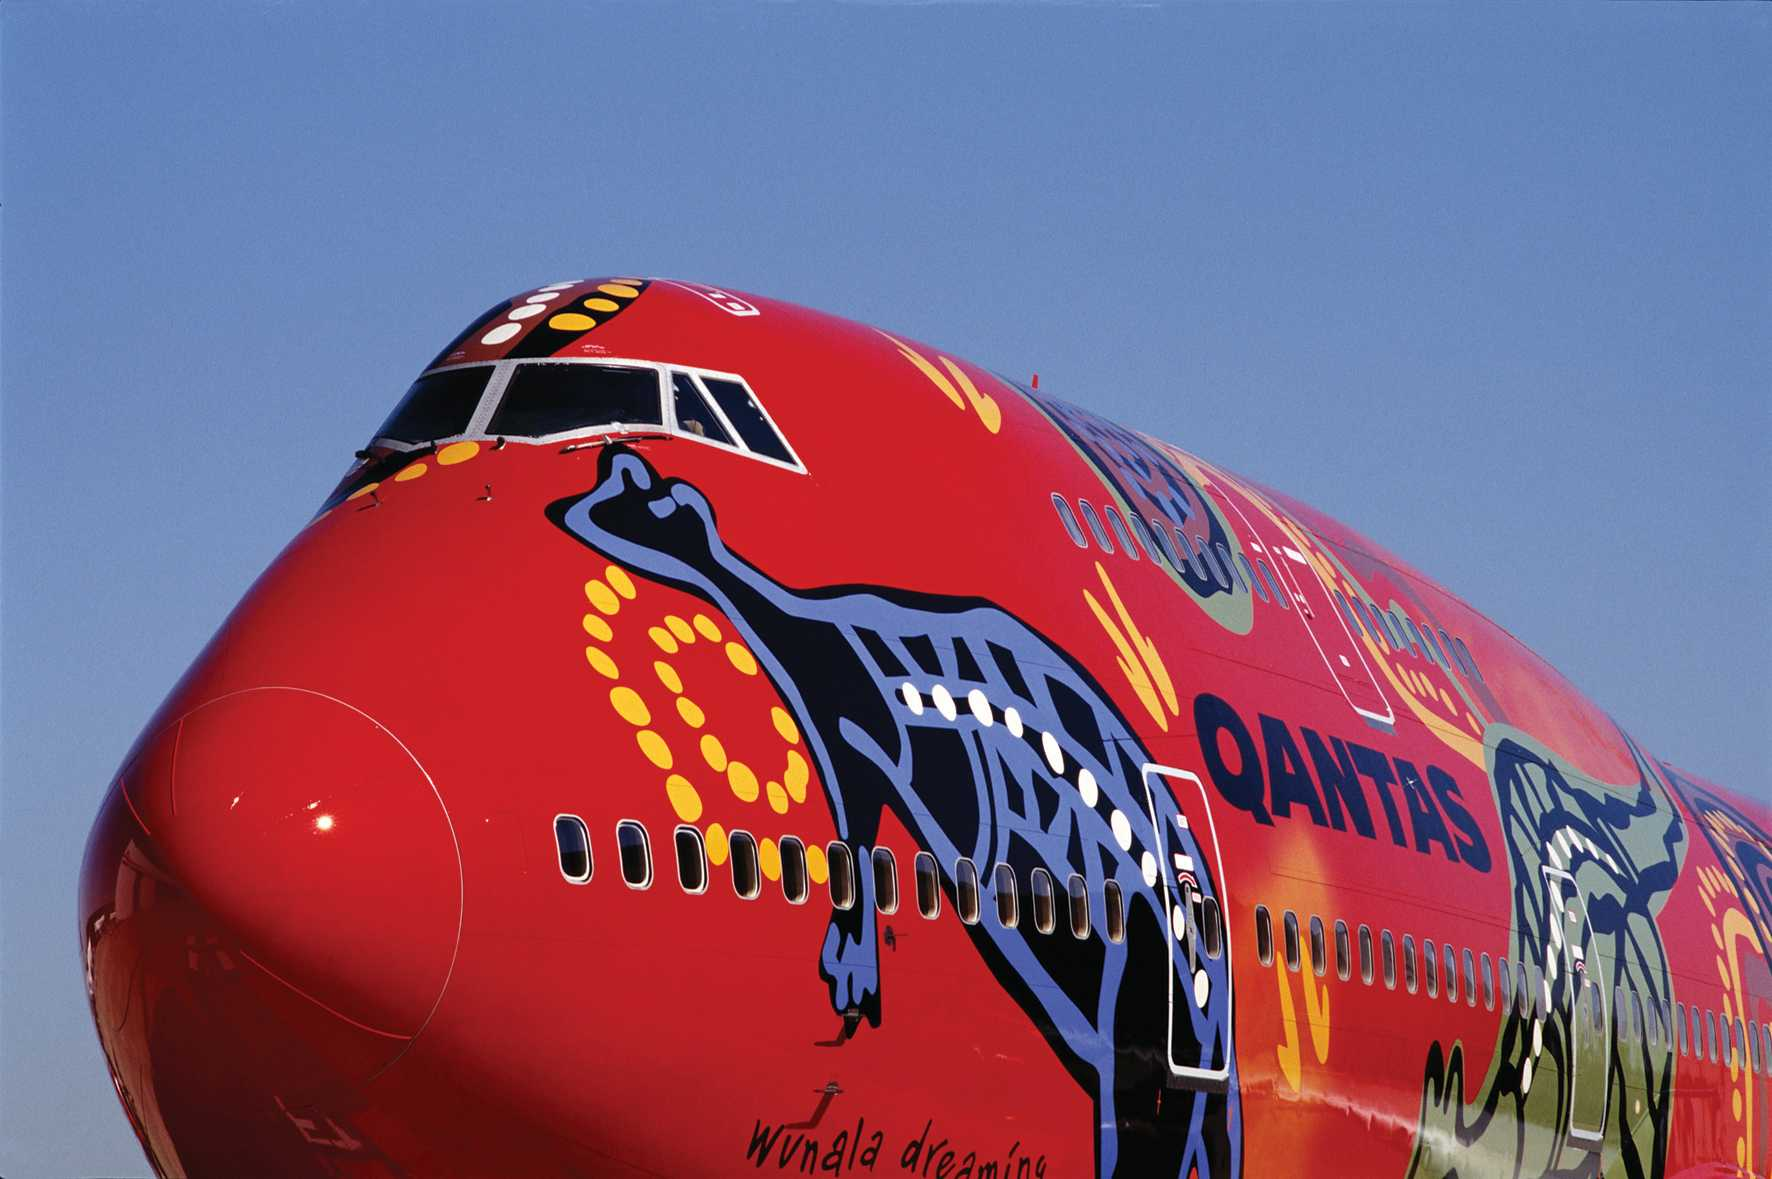 Front of a large aeroplane, painted in Aboriginal designs on a red backdrop. - click to view larger image